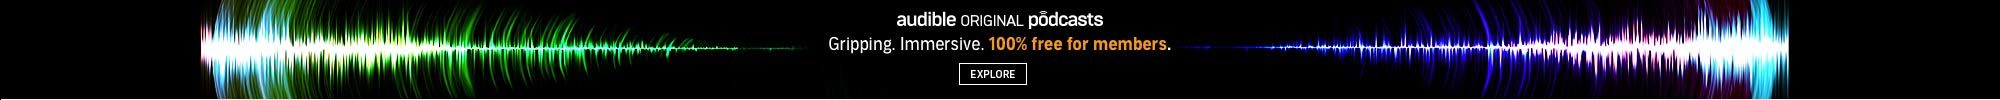 Audible Original Podcasts: Gripping. Immersive. 100% free for members. Click to discover them all.